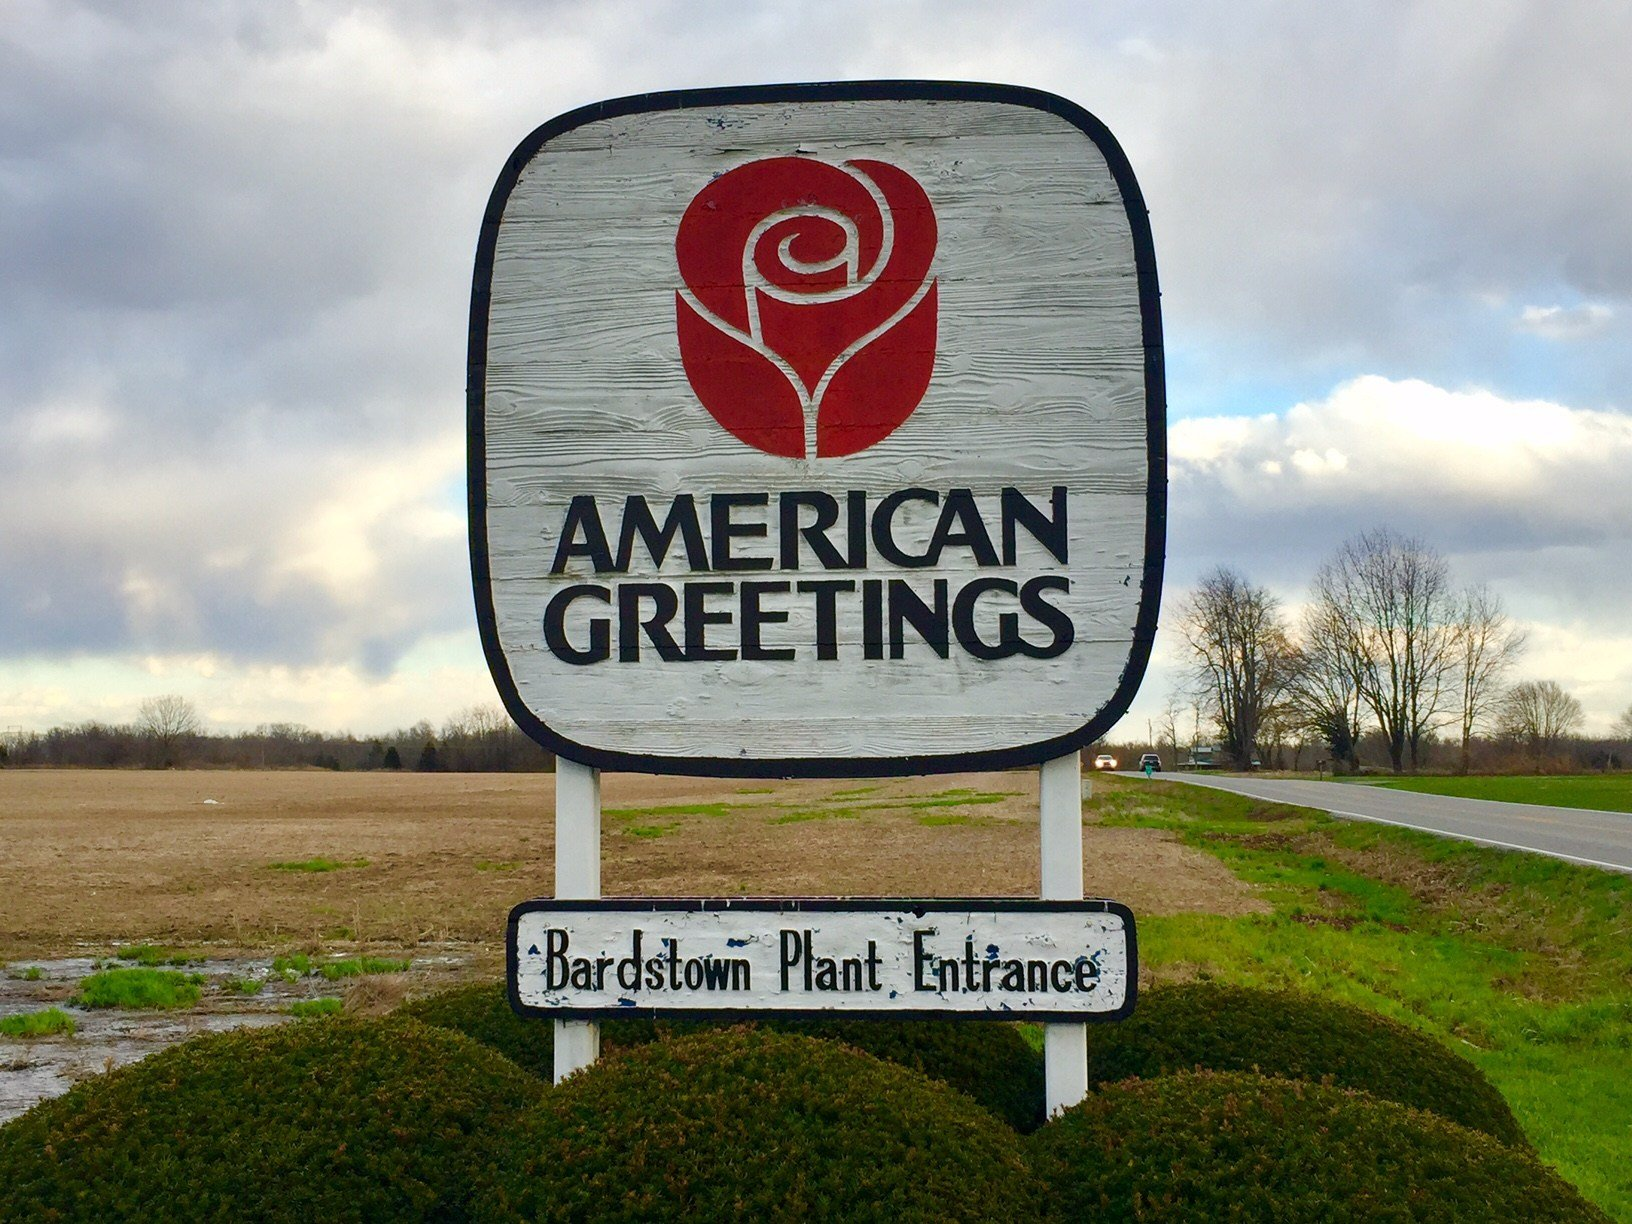 American greetings in bardstown to close laying off nearly 450 american greetings in bardstown to close laying off nearly 450 workers wdrb 41 louisville news m4hsunfo